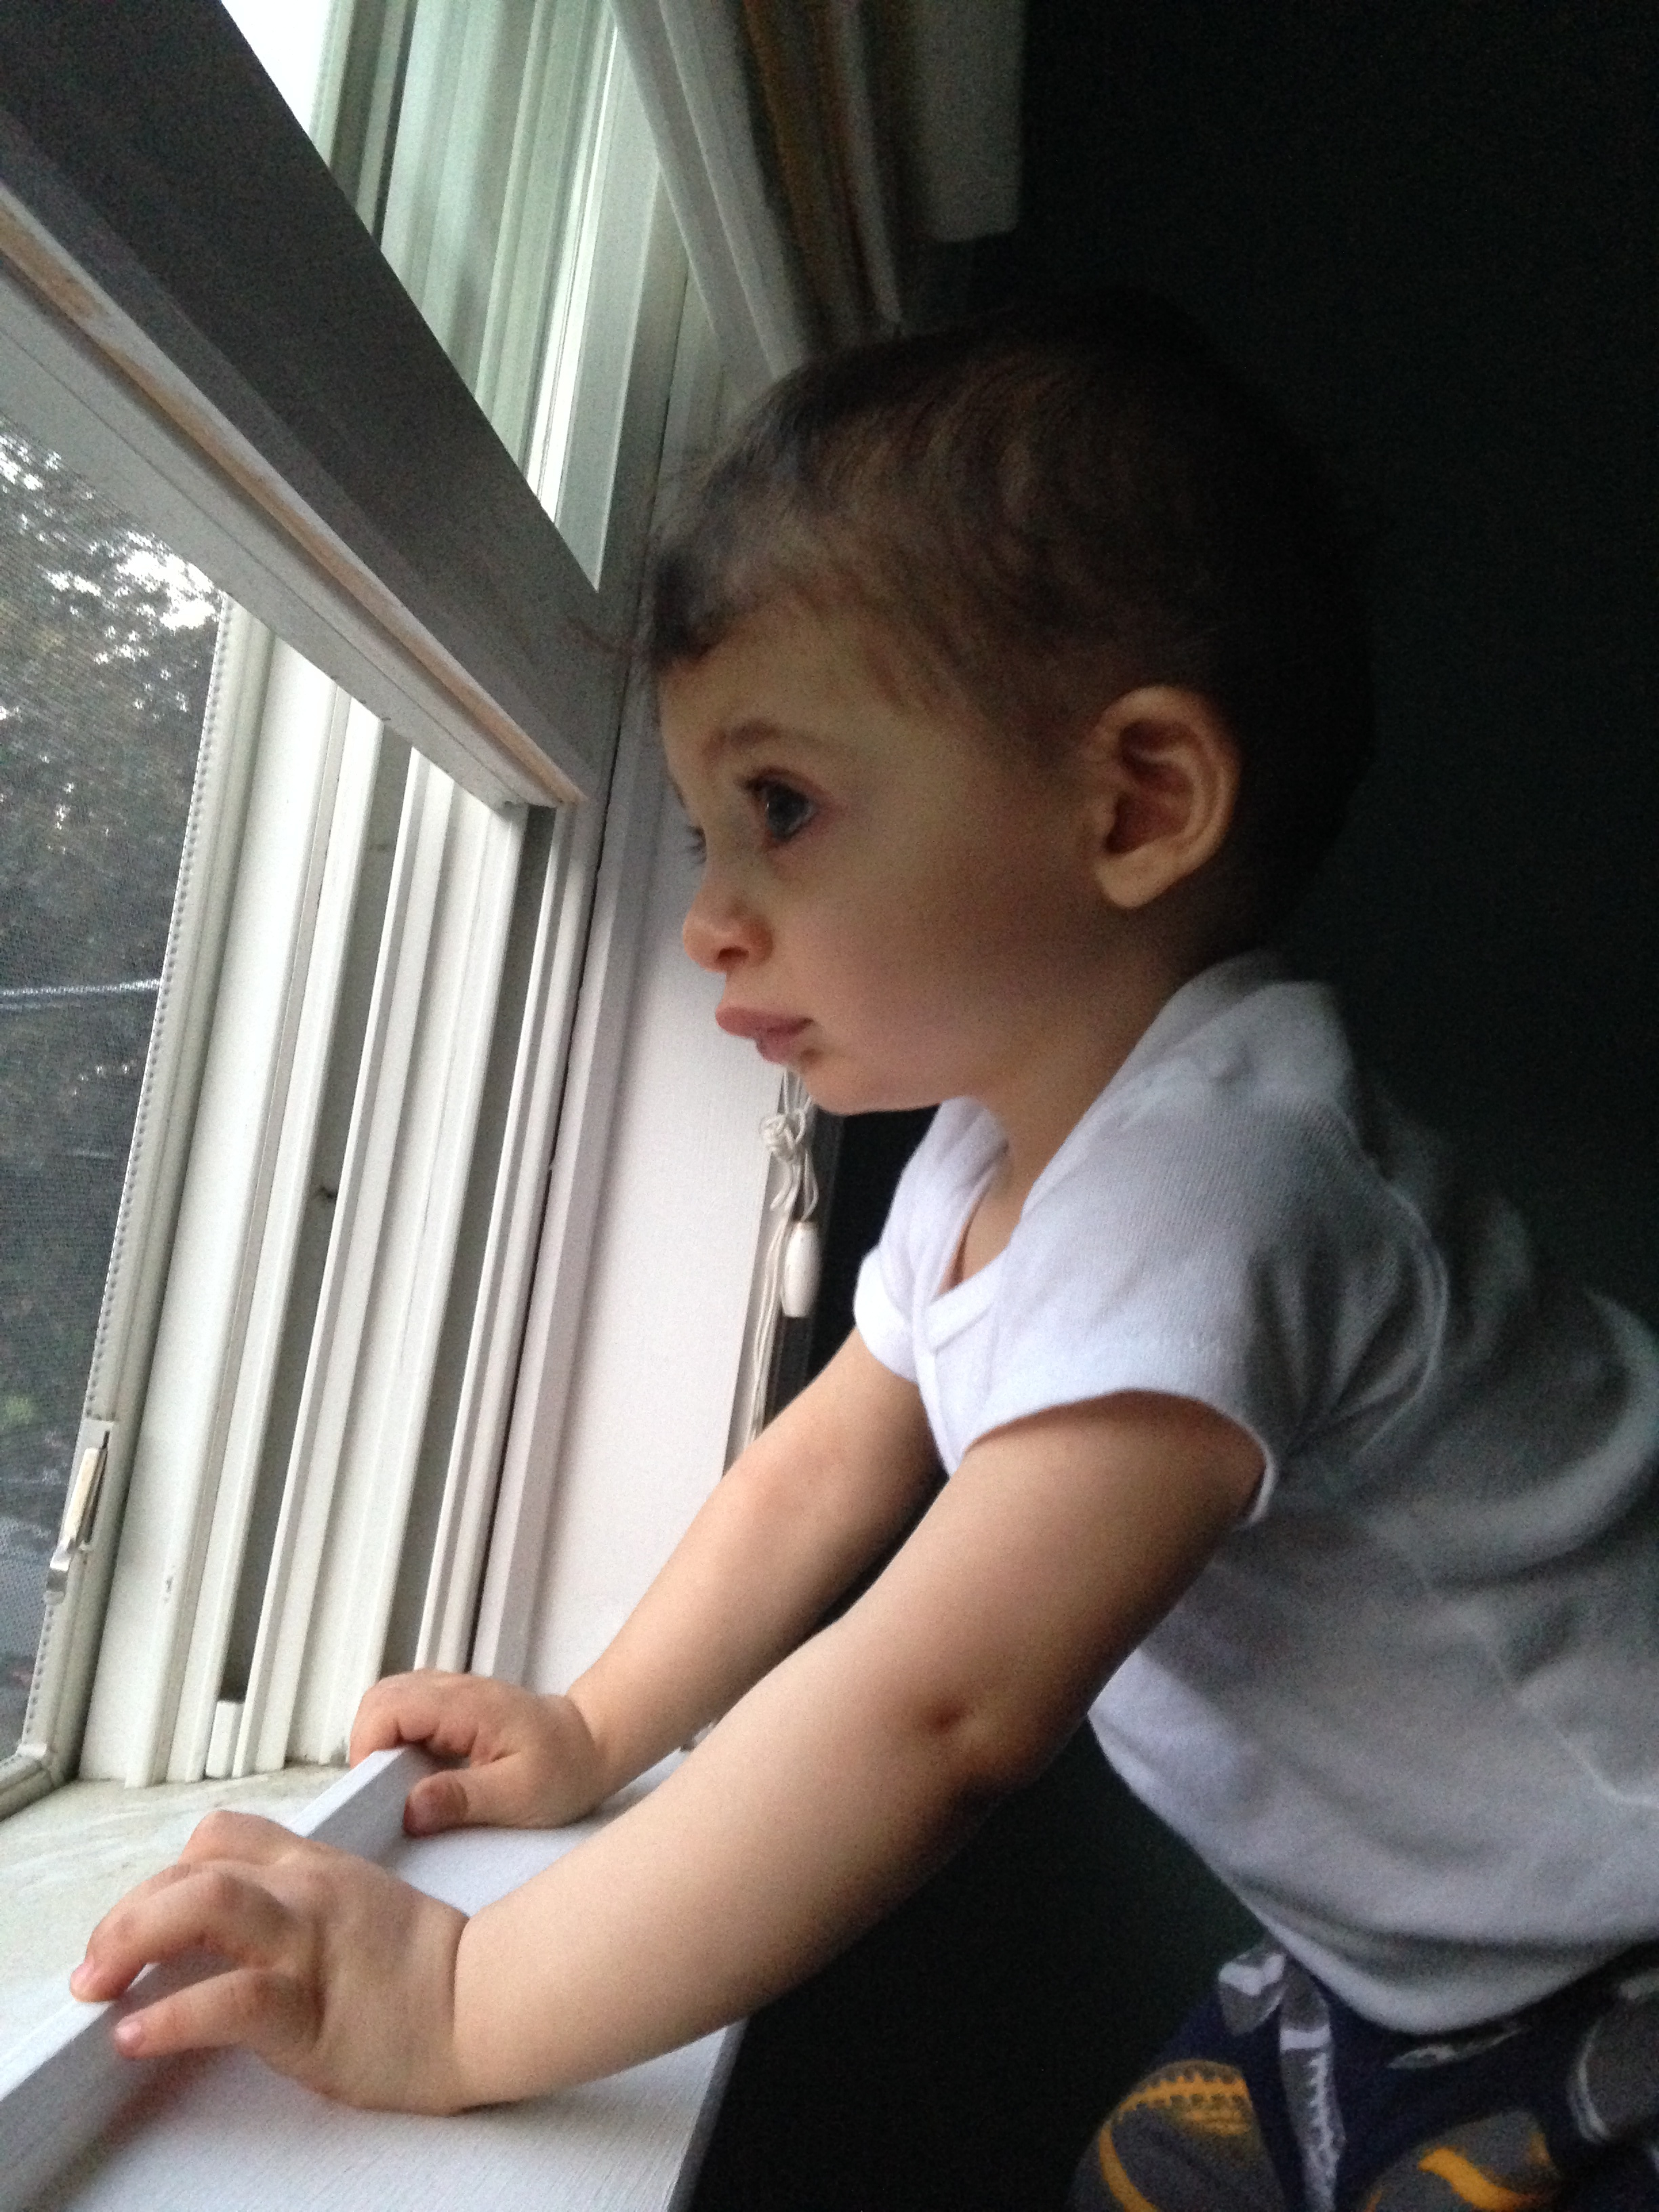 Young male child gazes out a window.